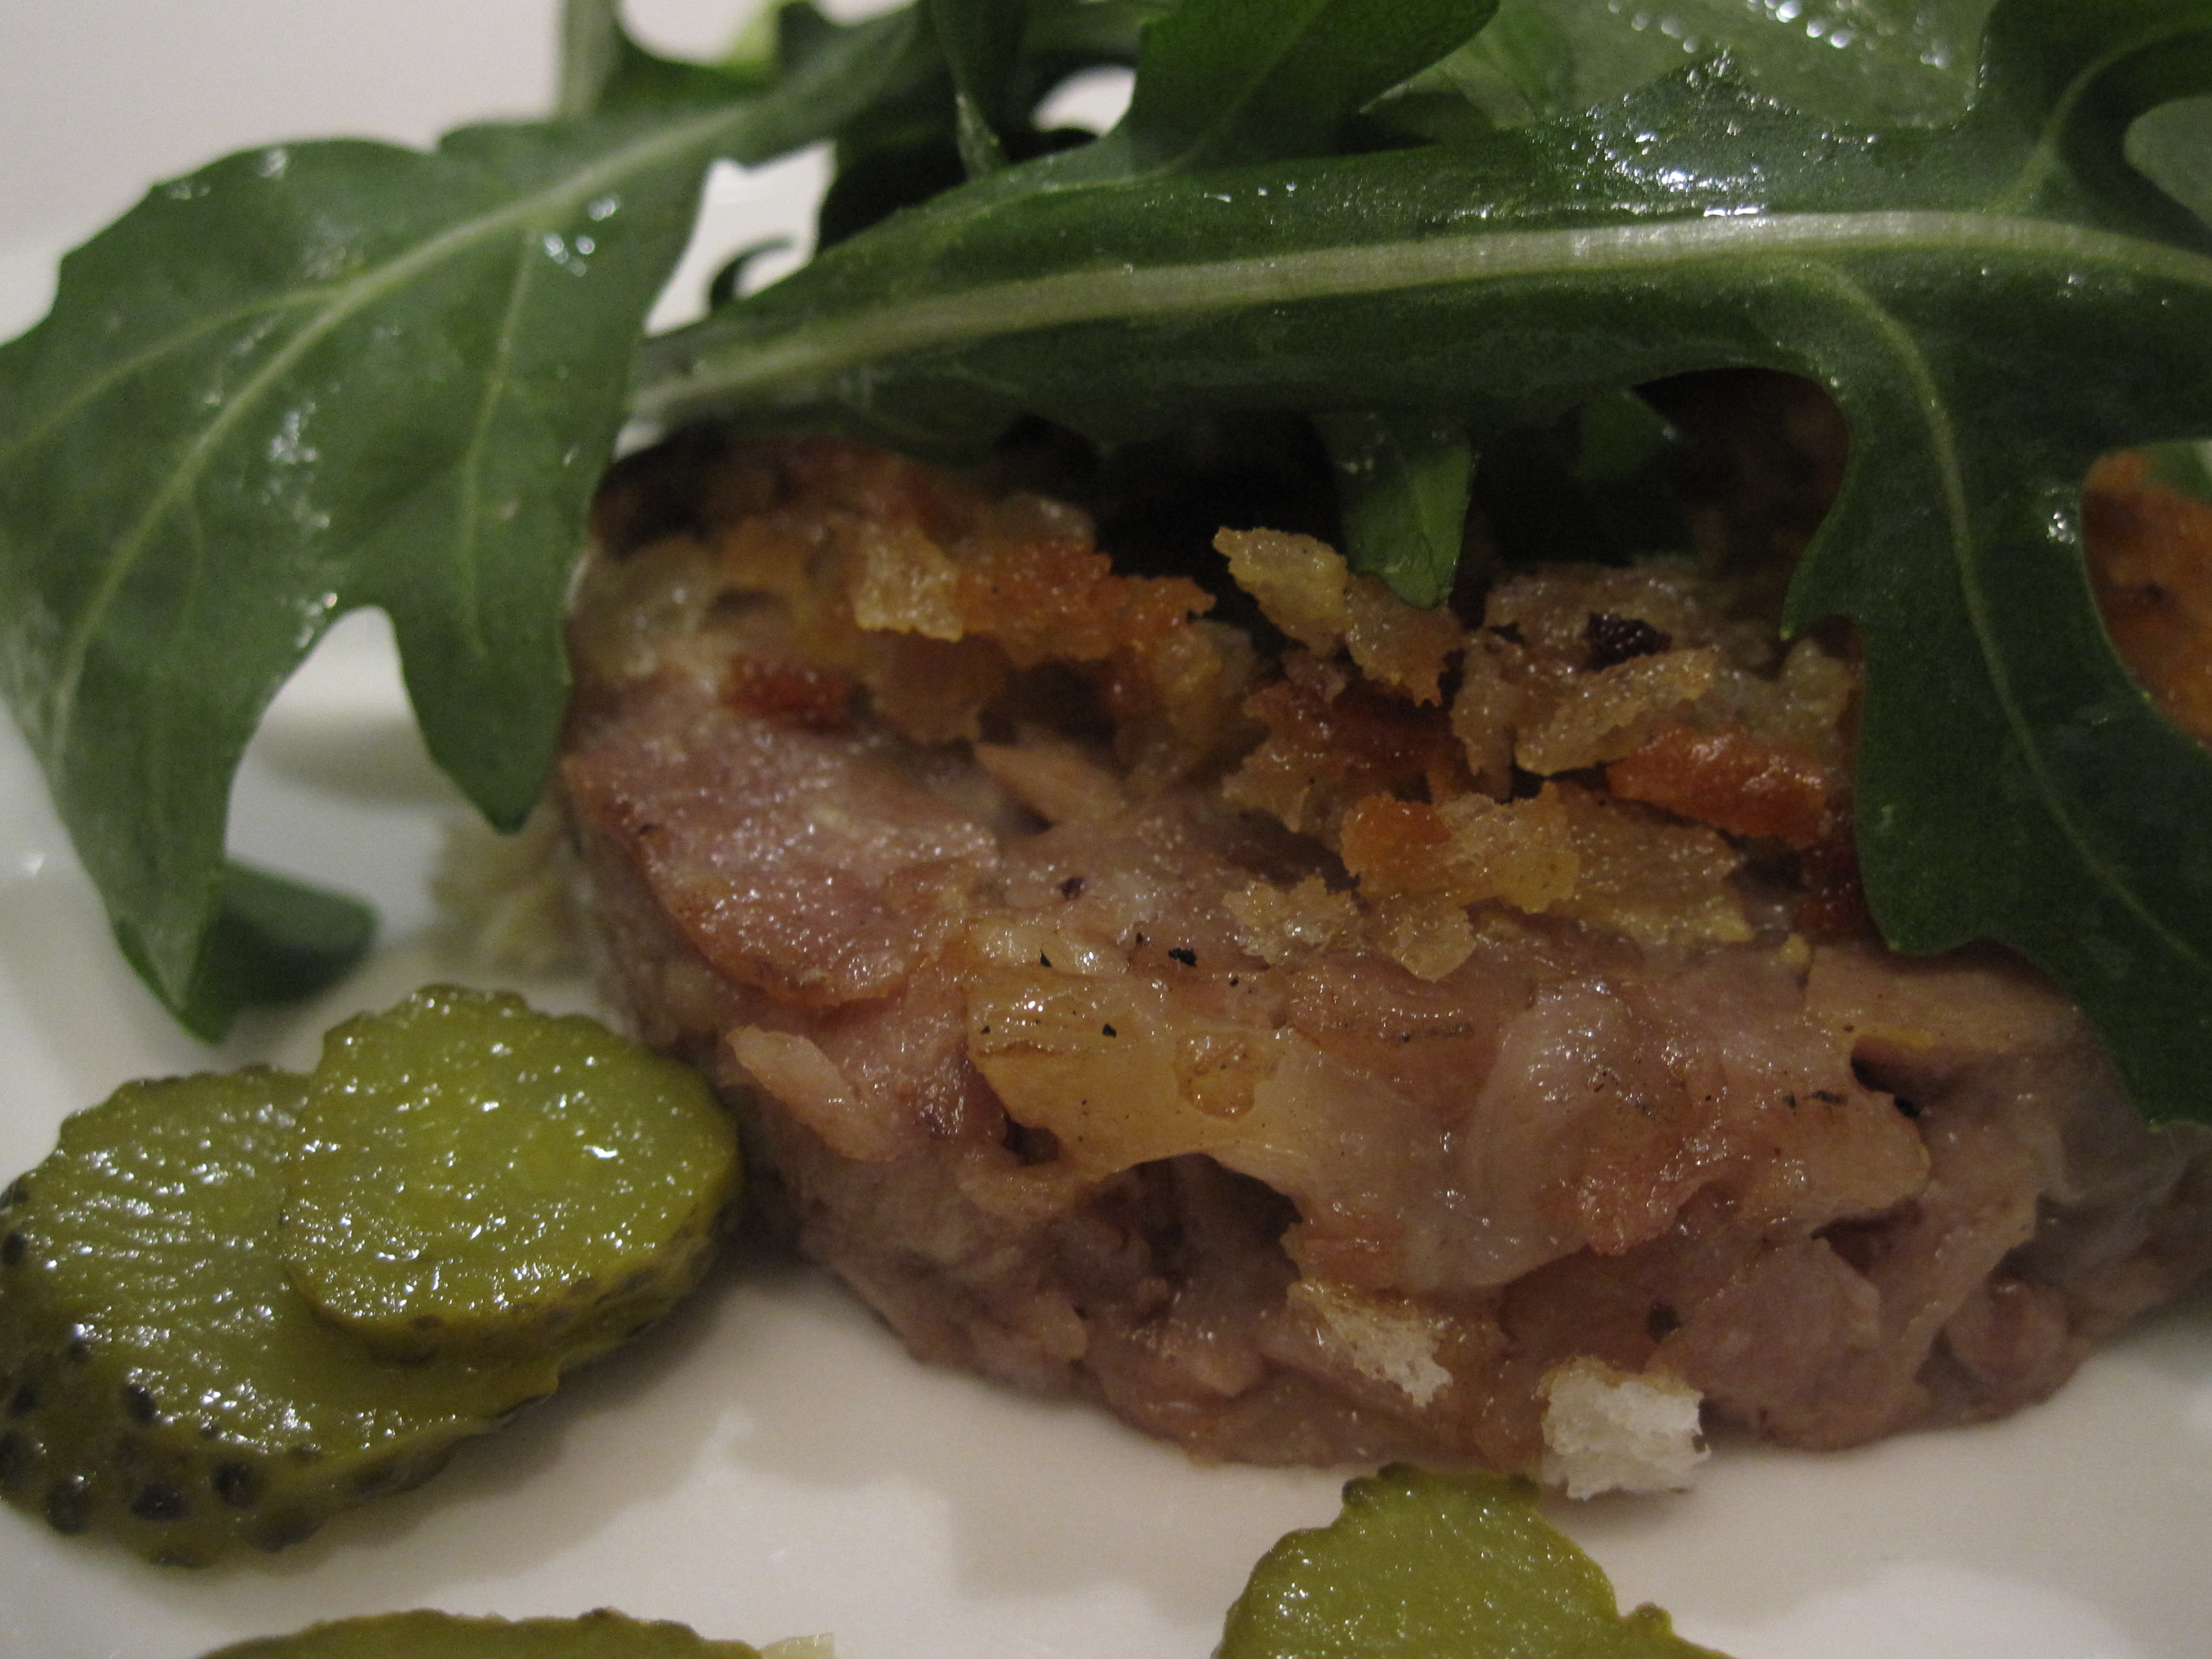 Scrapple with arugula and pickles was the final scrumptious dish.